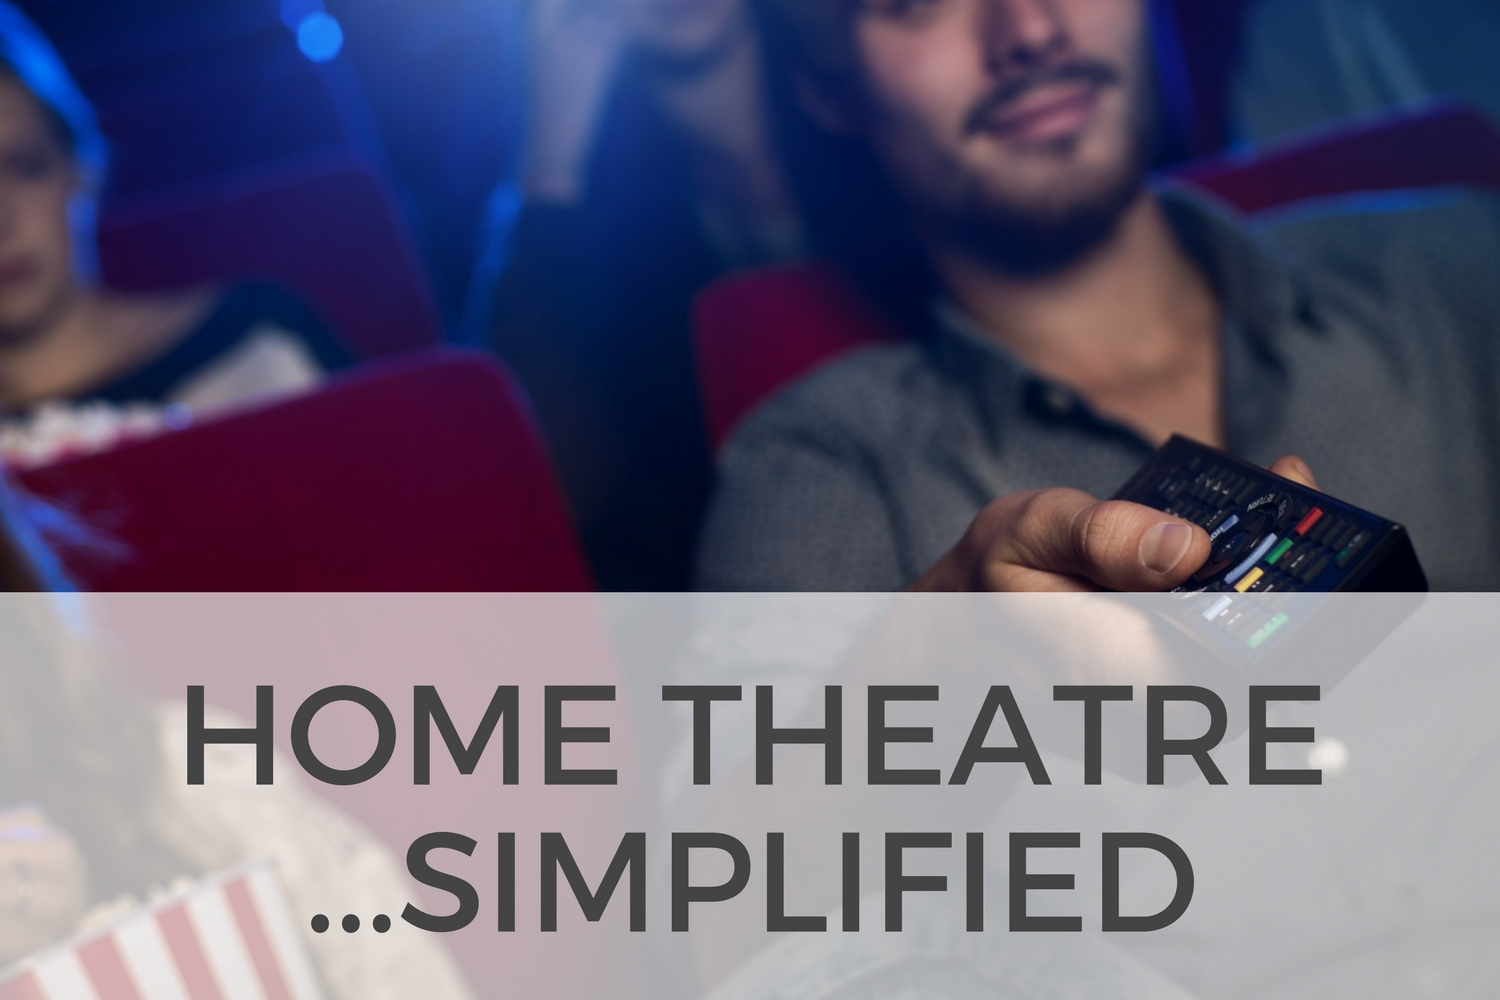 Home Theatre Simplified